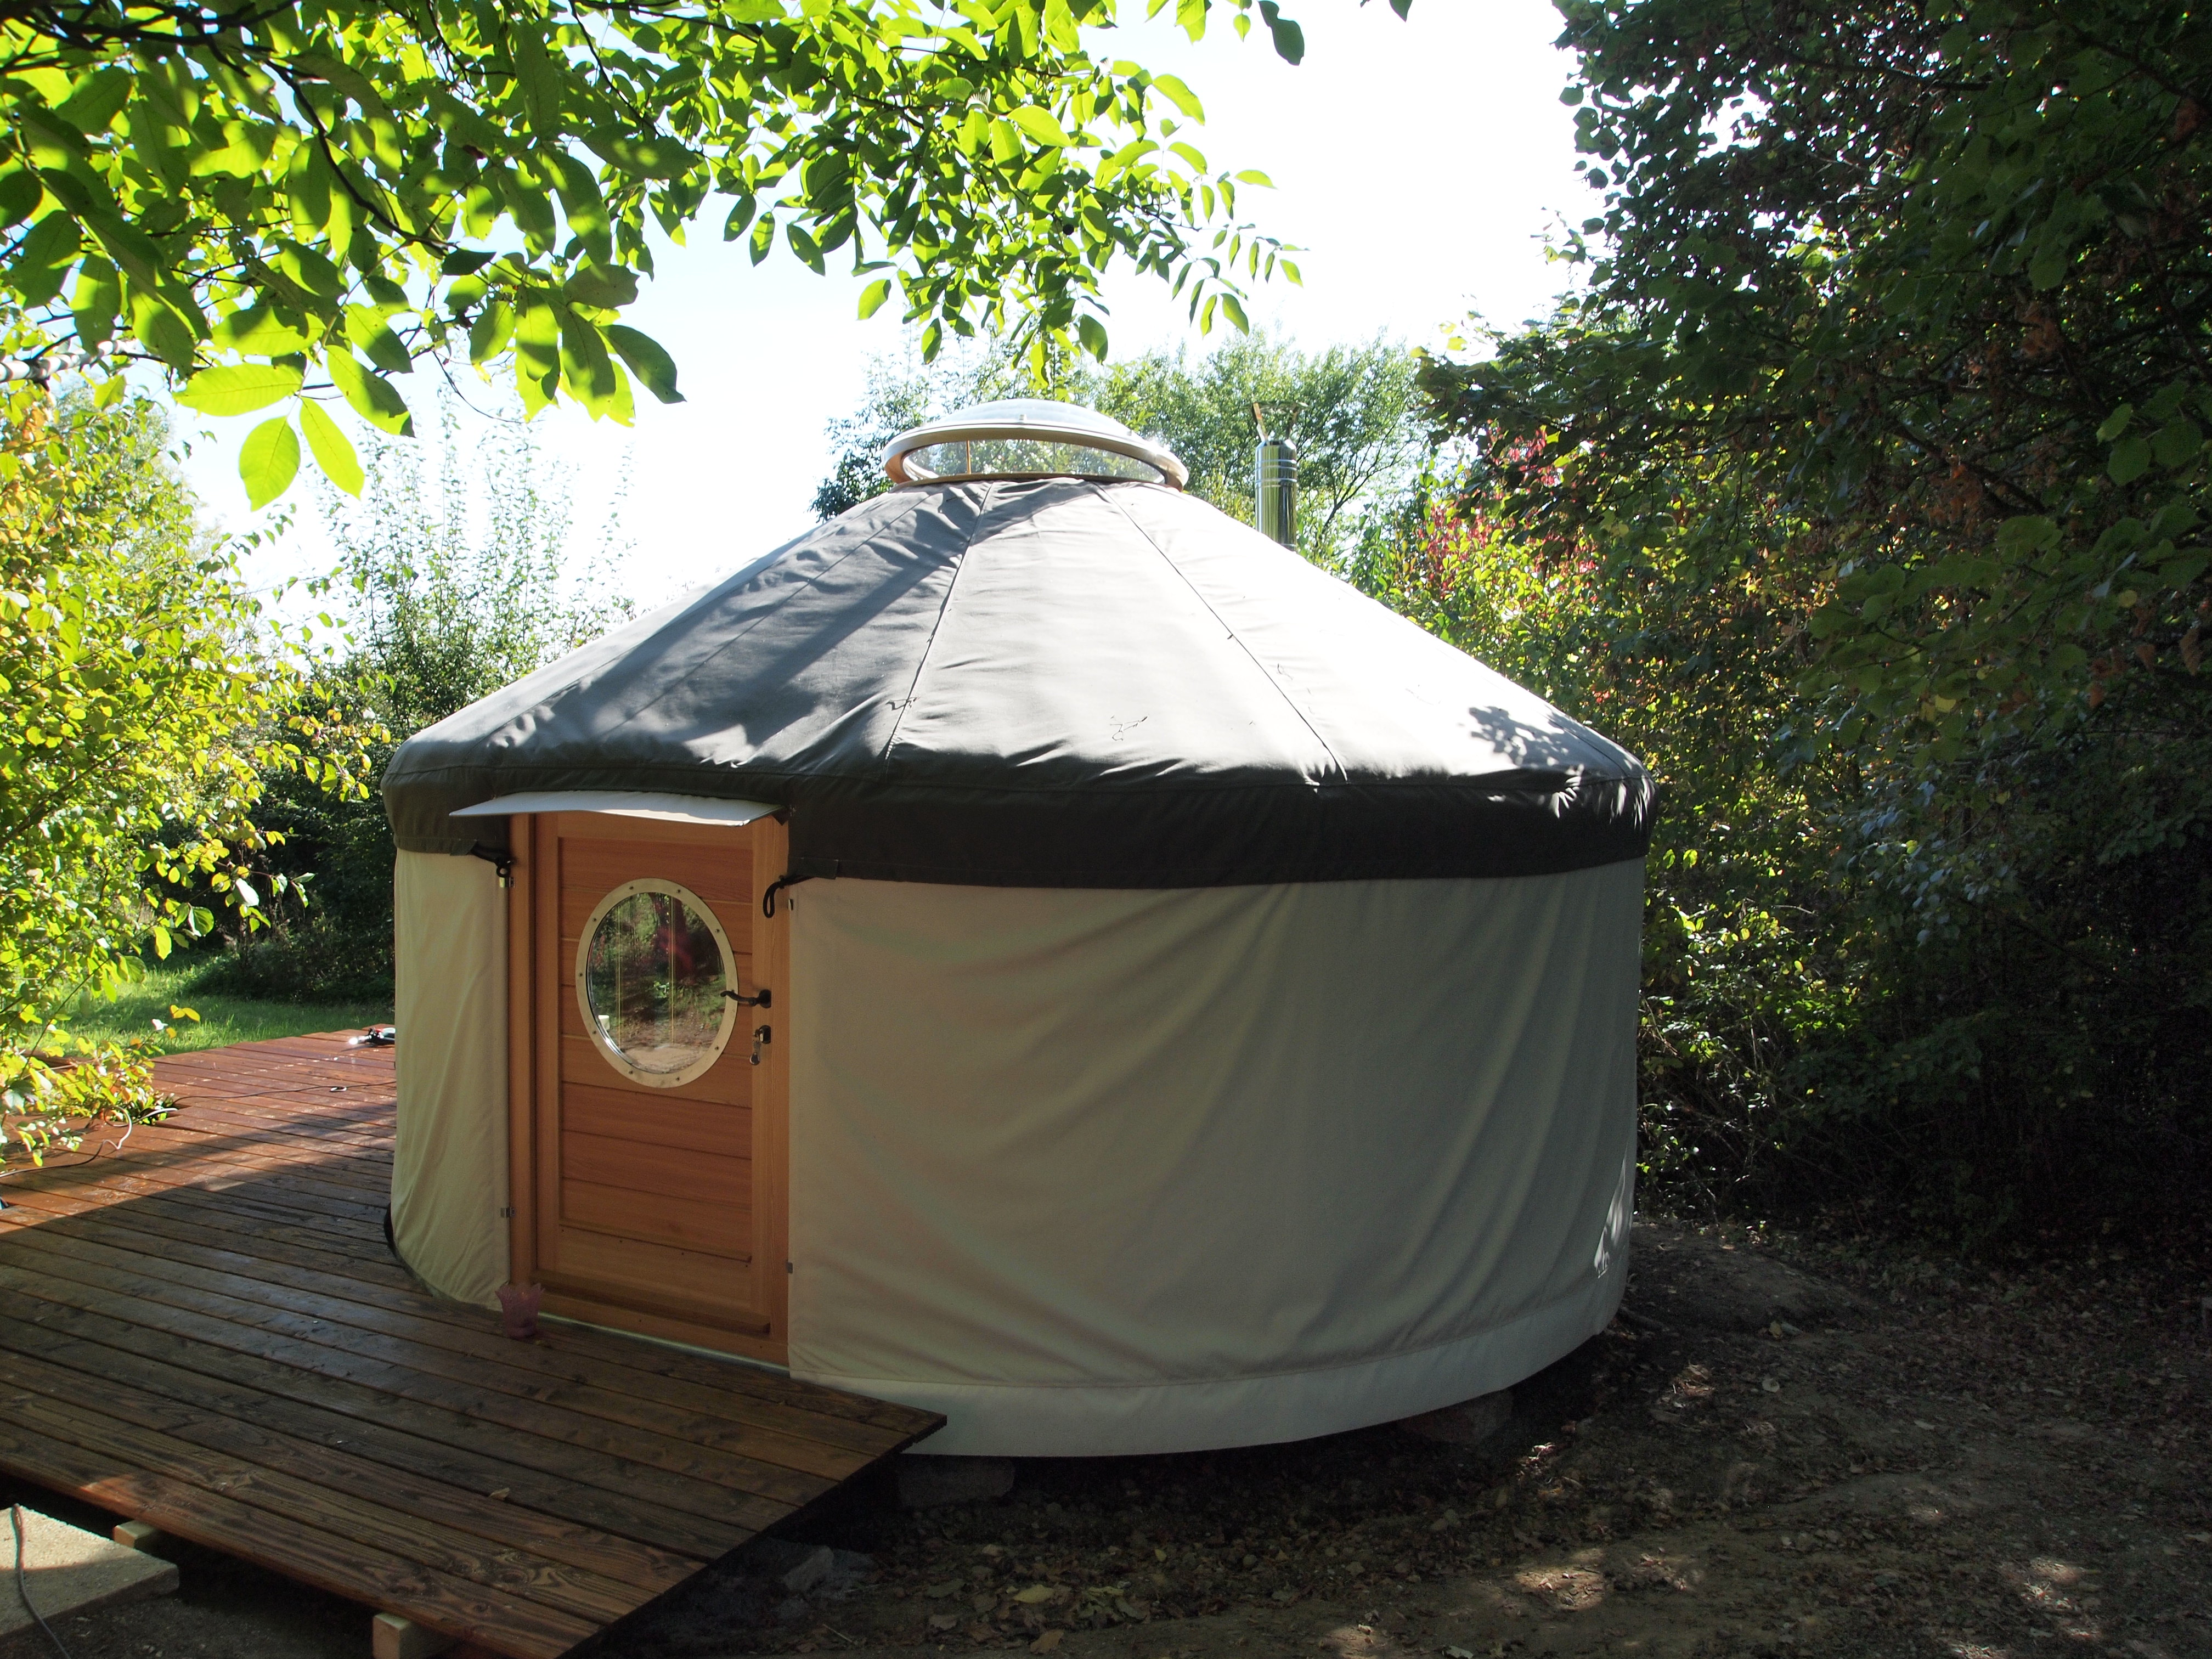 Holiday yurt - Stuttgart, Germany